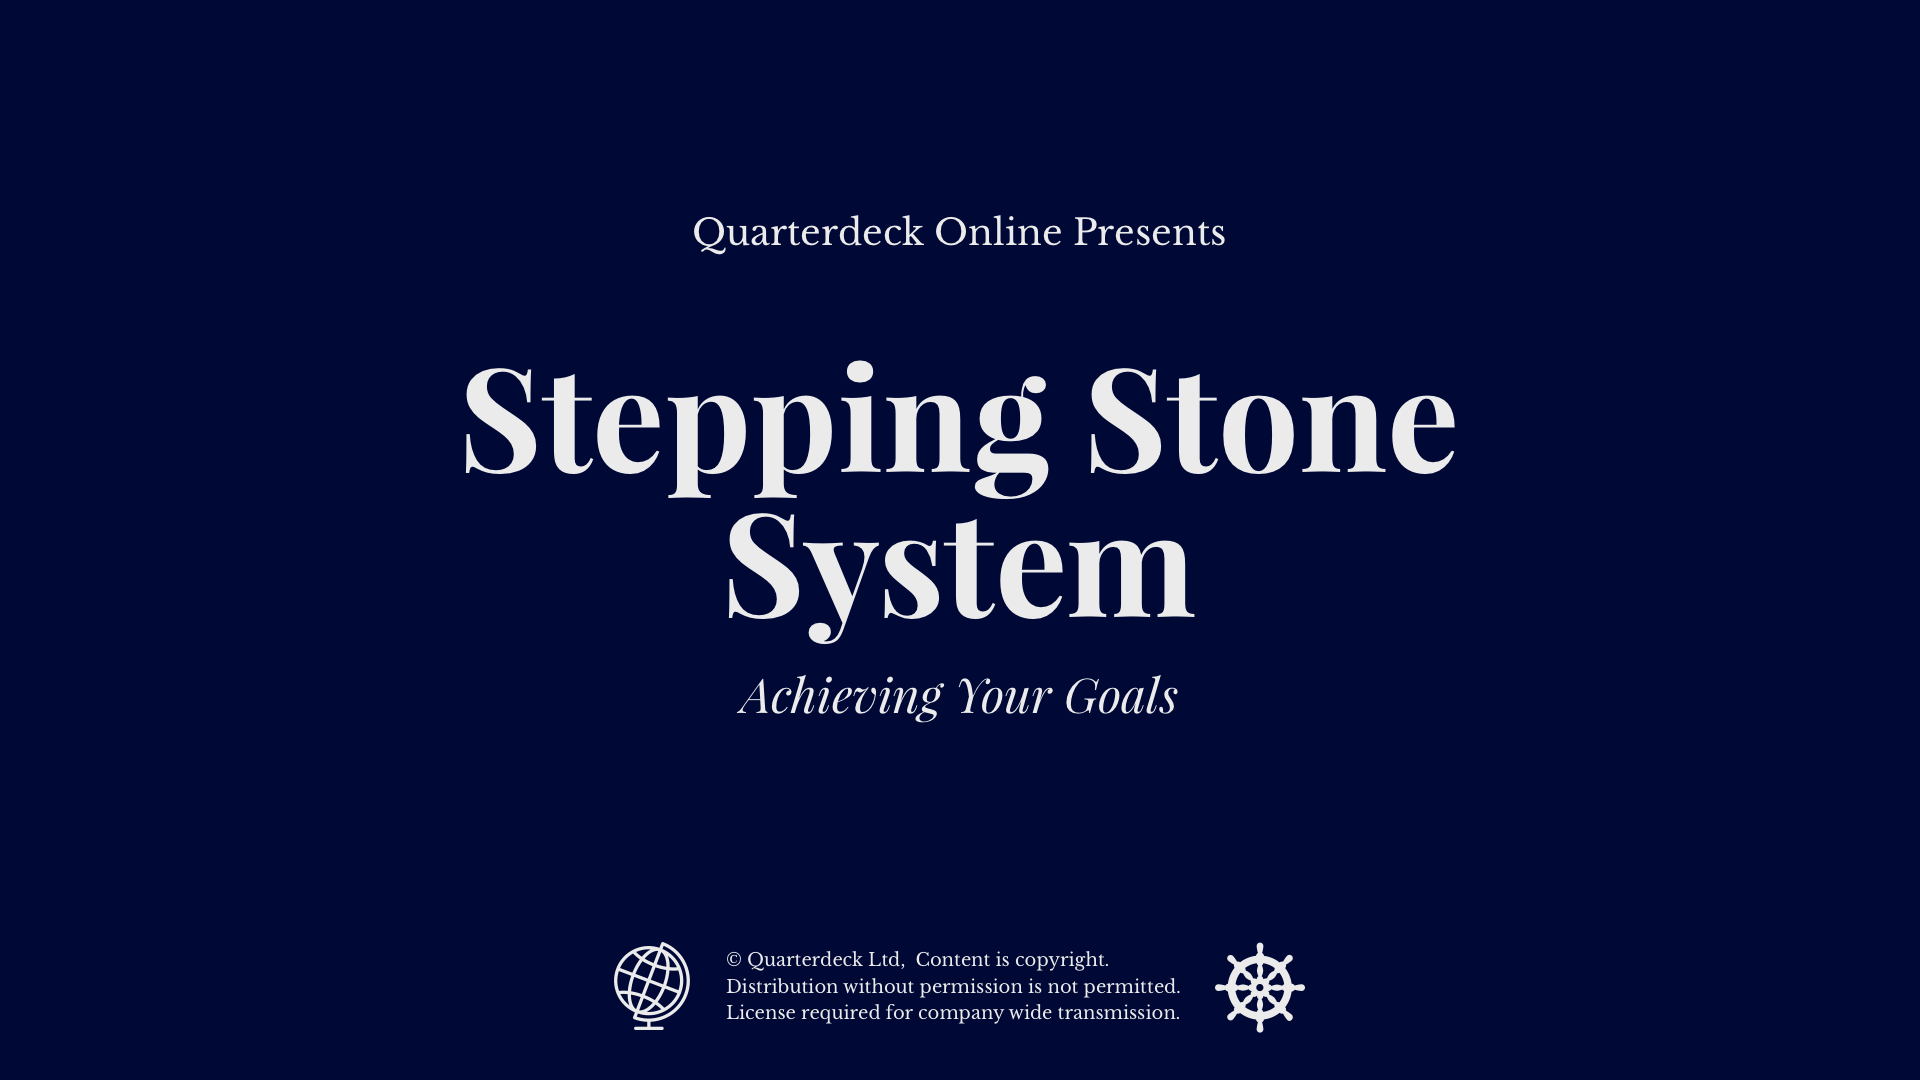 Stepping Stone System